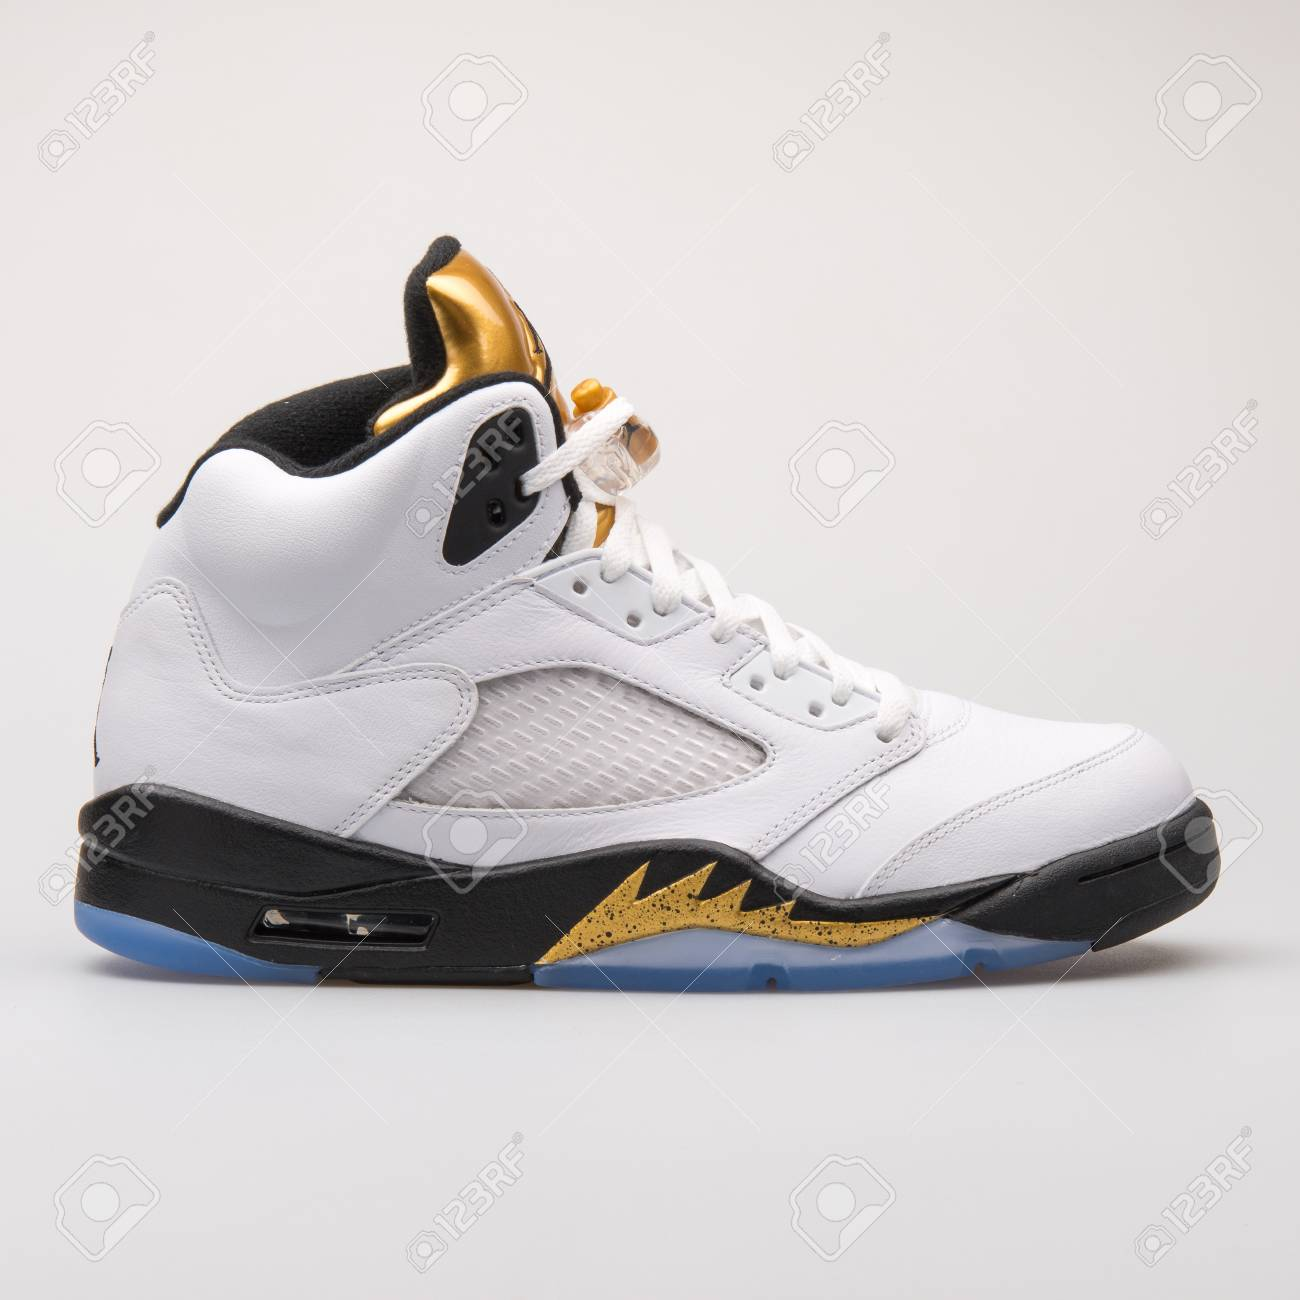 9306455b Stock Photo - VIENNA, AUSTRIA - JUNE 14, 2017: Nike Air Jordan 5 Retro  white, black and gold sneaker isolated on grey background